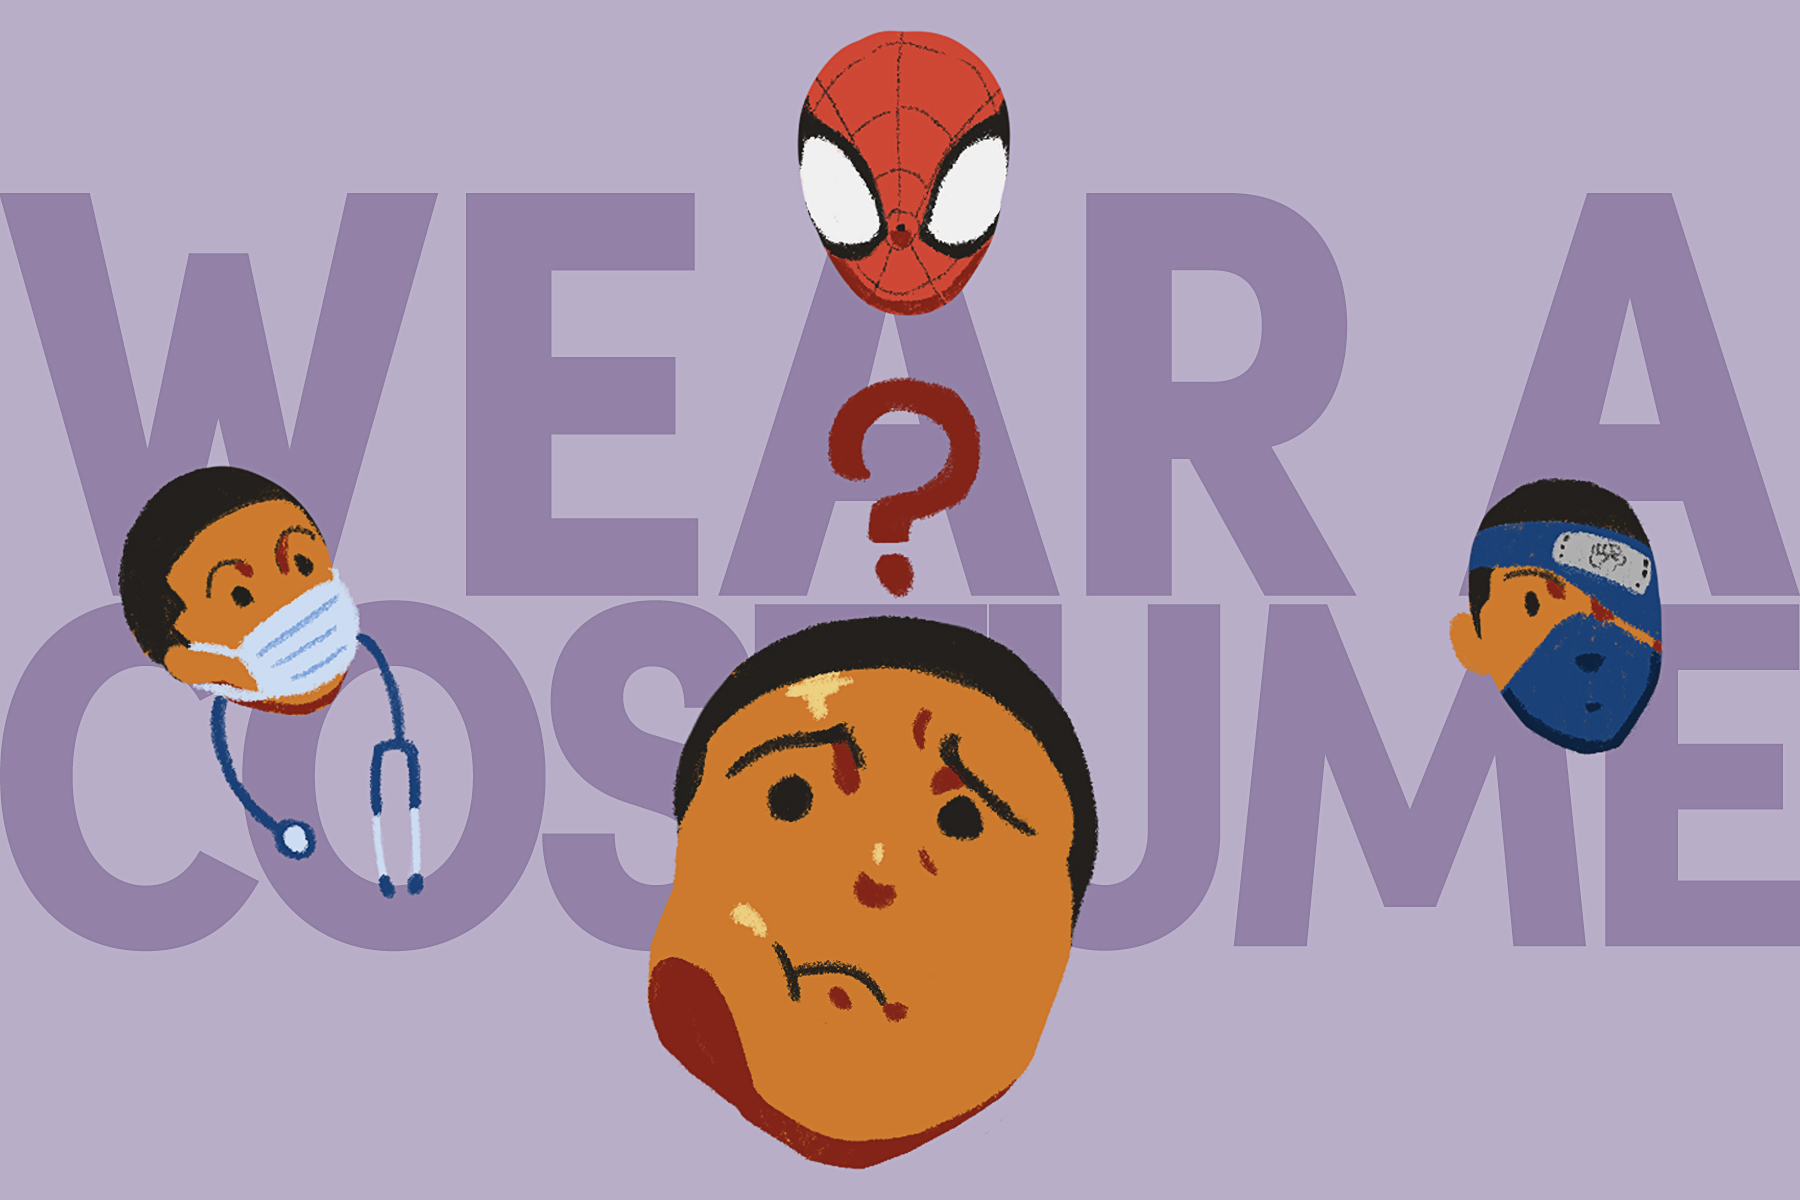 An illustration of someone thinking of wearing a costume with a mask for Halloween.